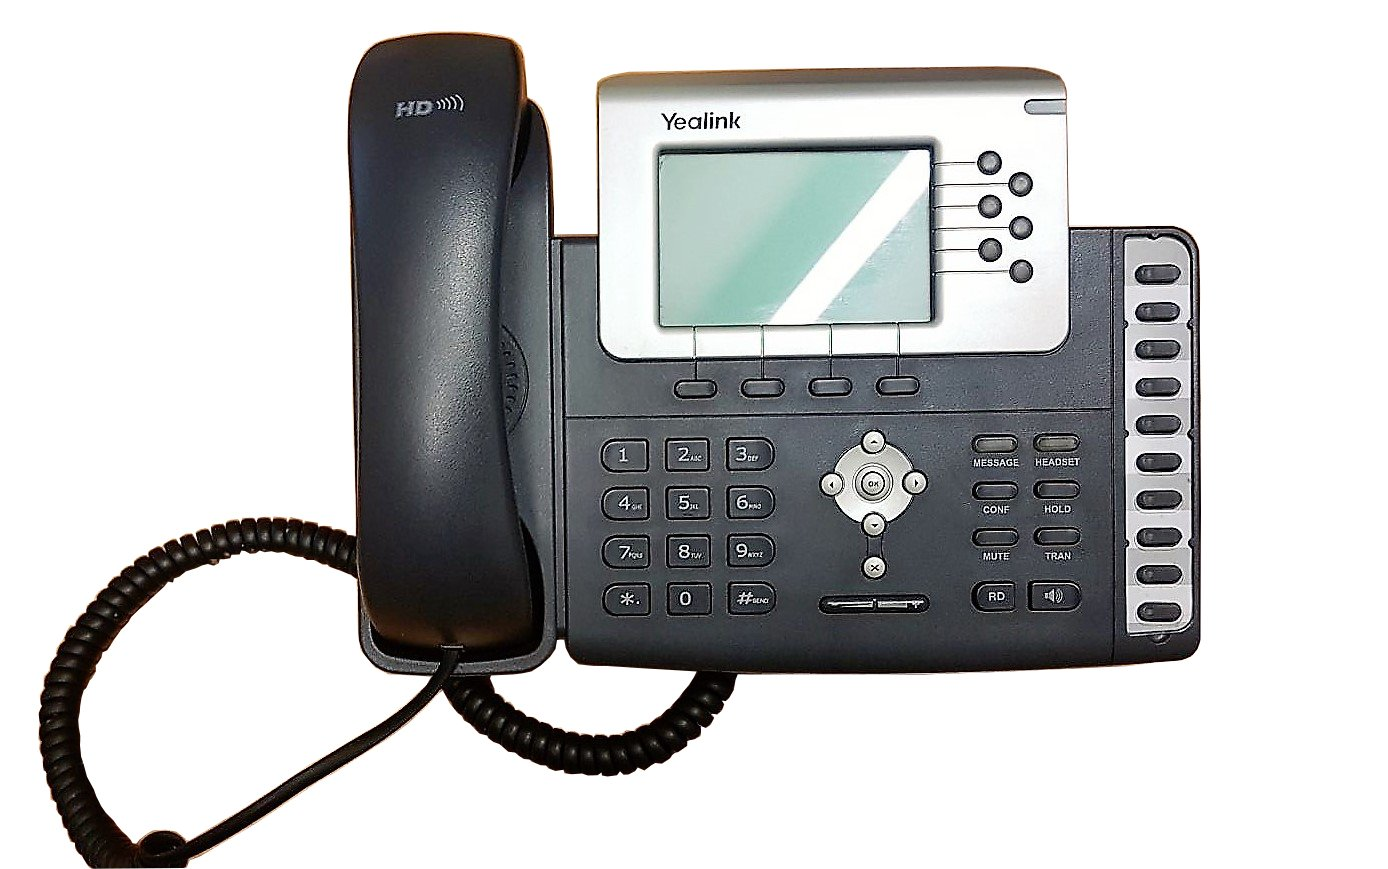 Yealink T28P ( Storm iPath 120 ) IP Phone / 6 lines Wired